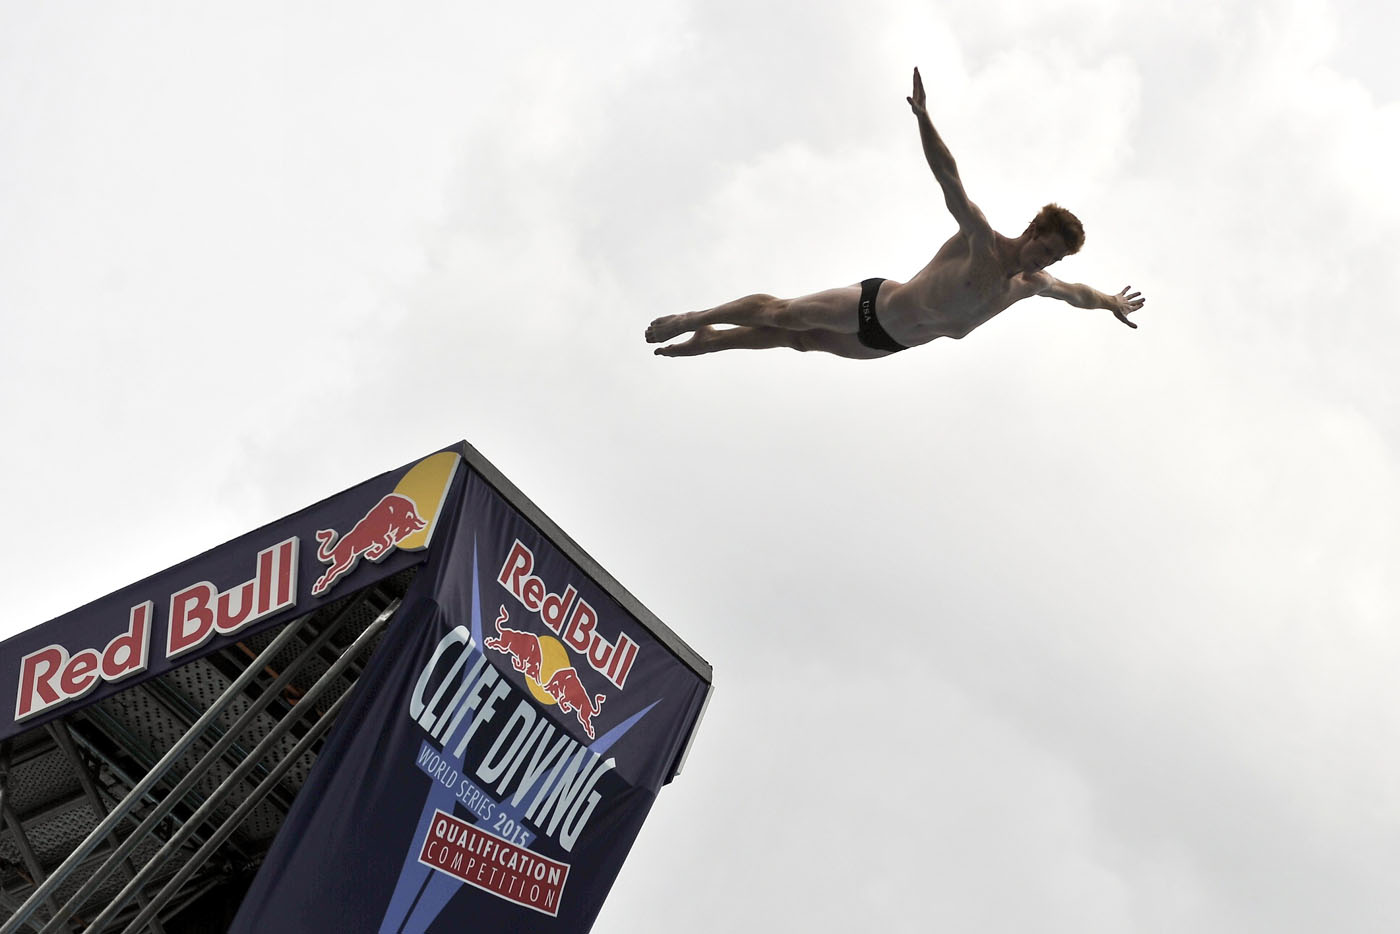 cliff diving world series